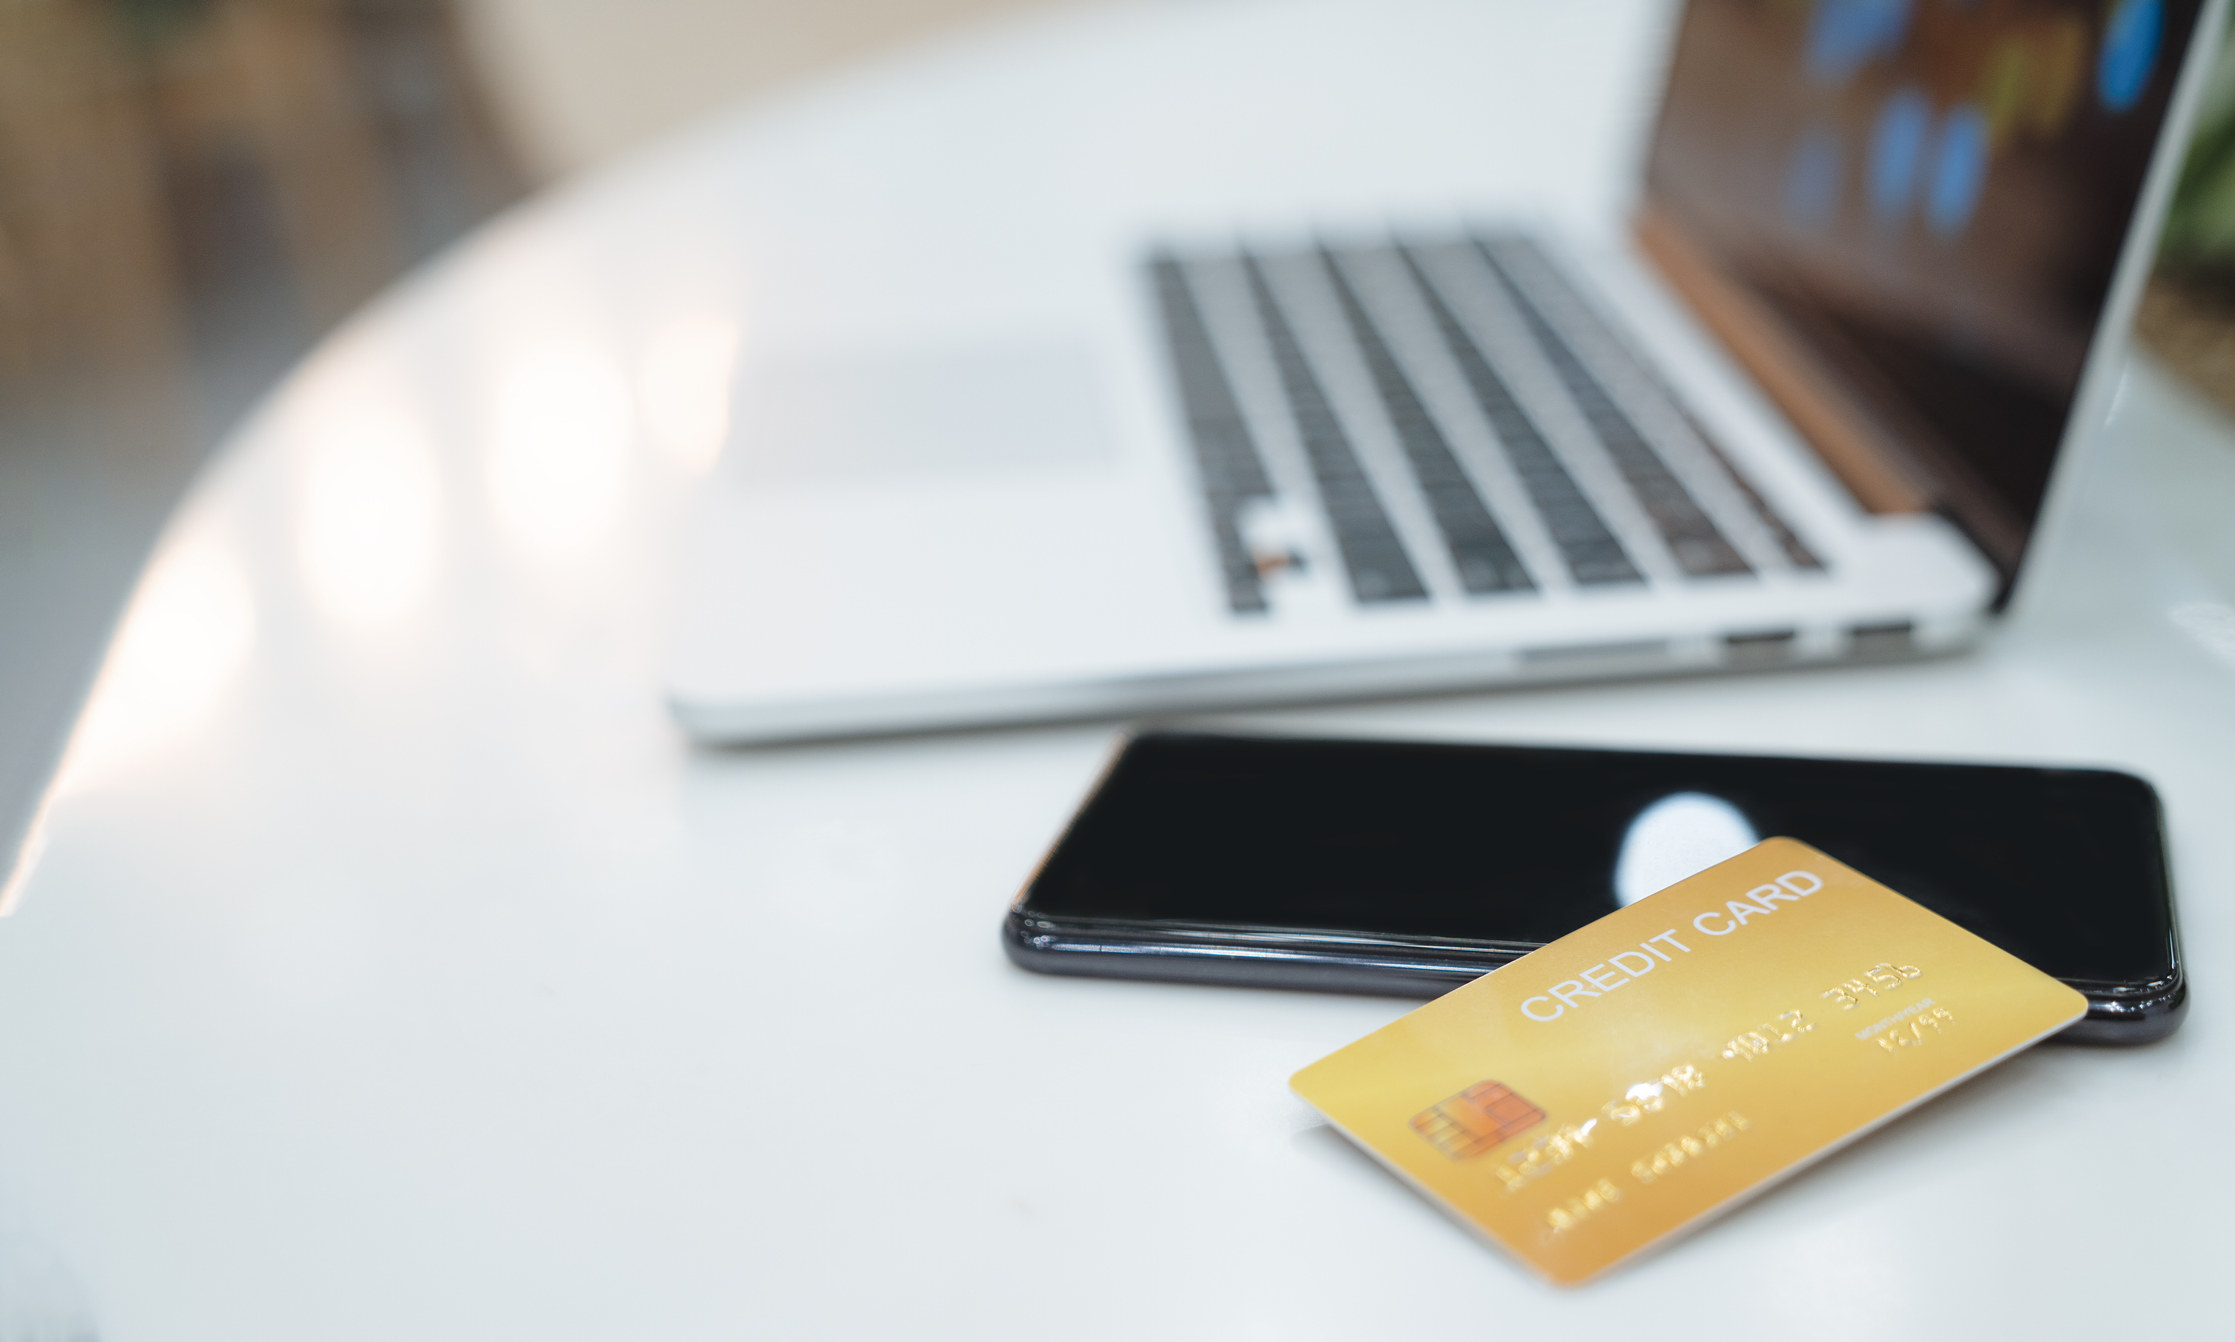 A credit card, cellphone, and hotel reservation pass